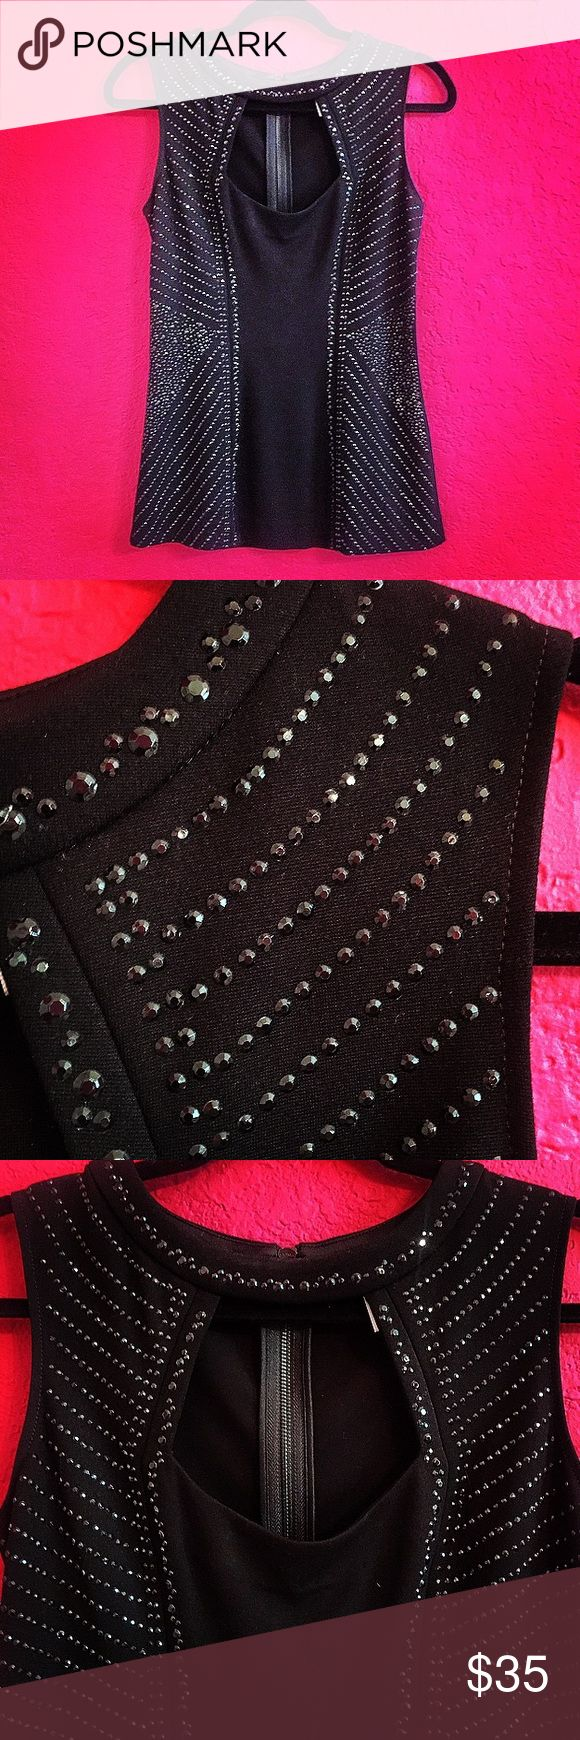 Embellished, Cutout, Sleeveless Blouse by Cache This embellished, cutout, sleeveless blouse by Cache can be worn to formal occasions or easily converted for a dressy casual event when paired with a cute pair of jeans. Here are the deets:  Size Small - Fits True to Size Black Fabric Black Beading Embellishment  Sleeveless Cutout on Chest Gently Worn (Worn 1x ONLY) No Known or Visible Flaws Back Zipper Stretchy Material Cache Tops Blouses